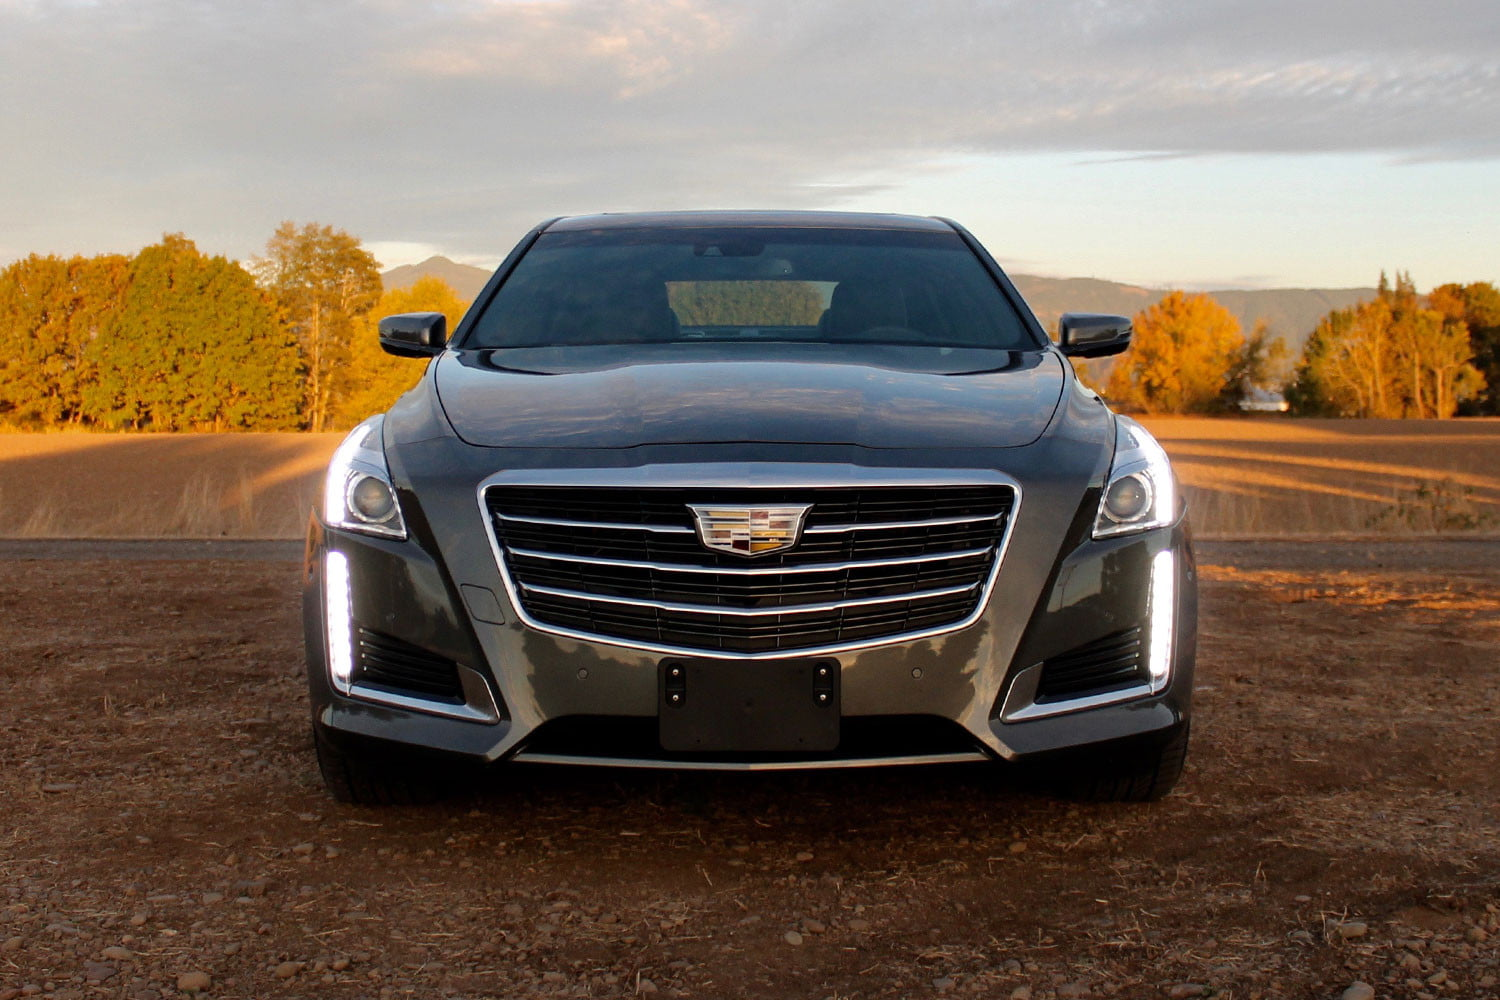 2016 cadillac cts review digital trends. Black Bedroom Furniture Sets. Home Design Ideas